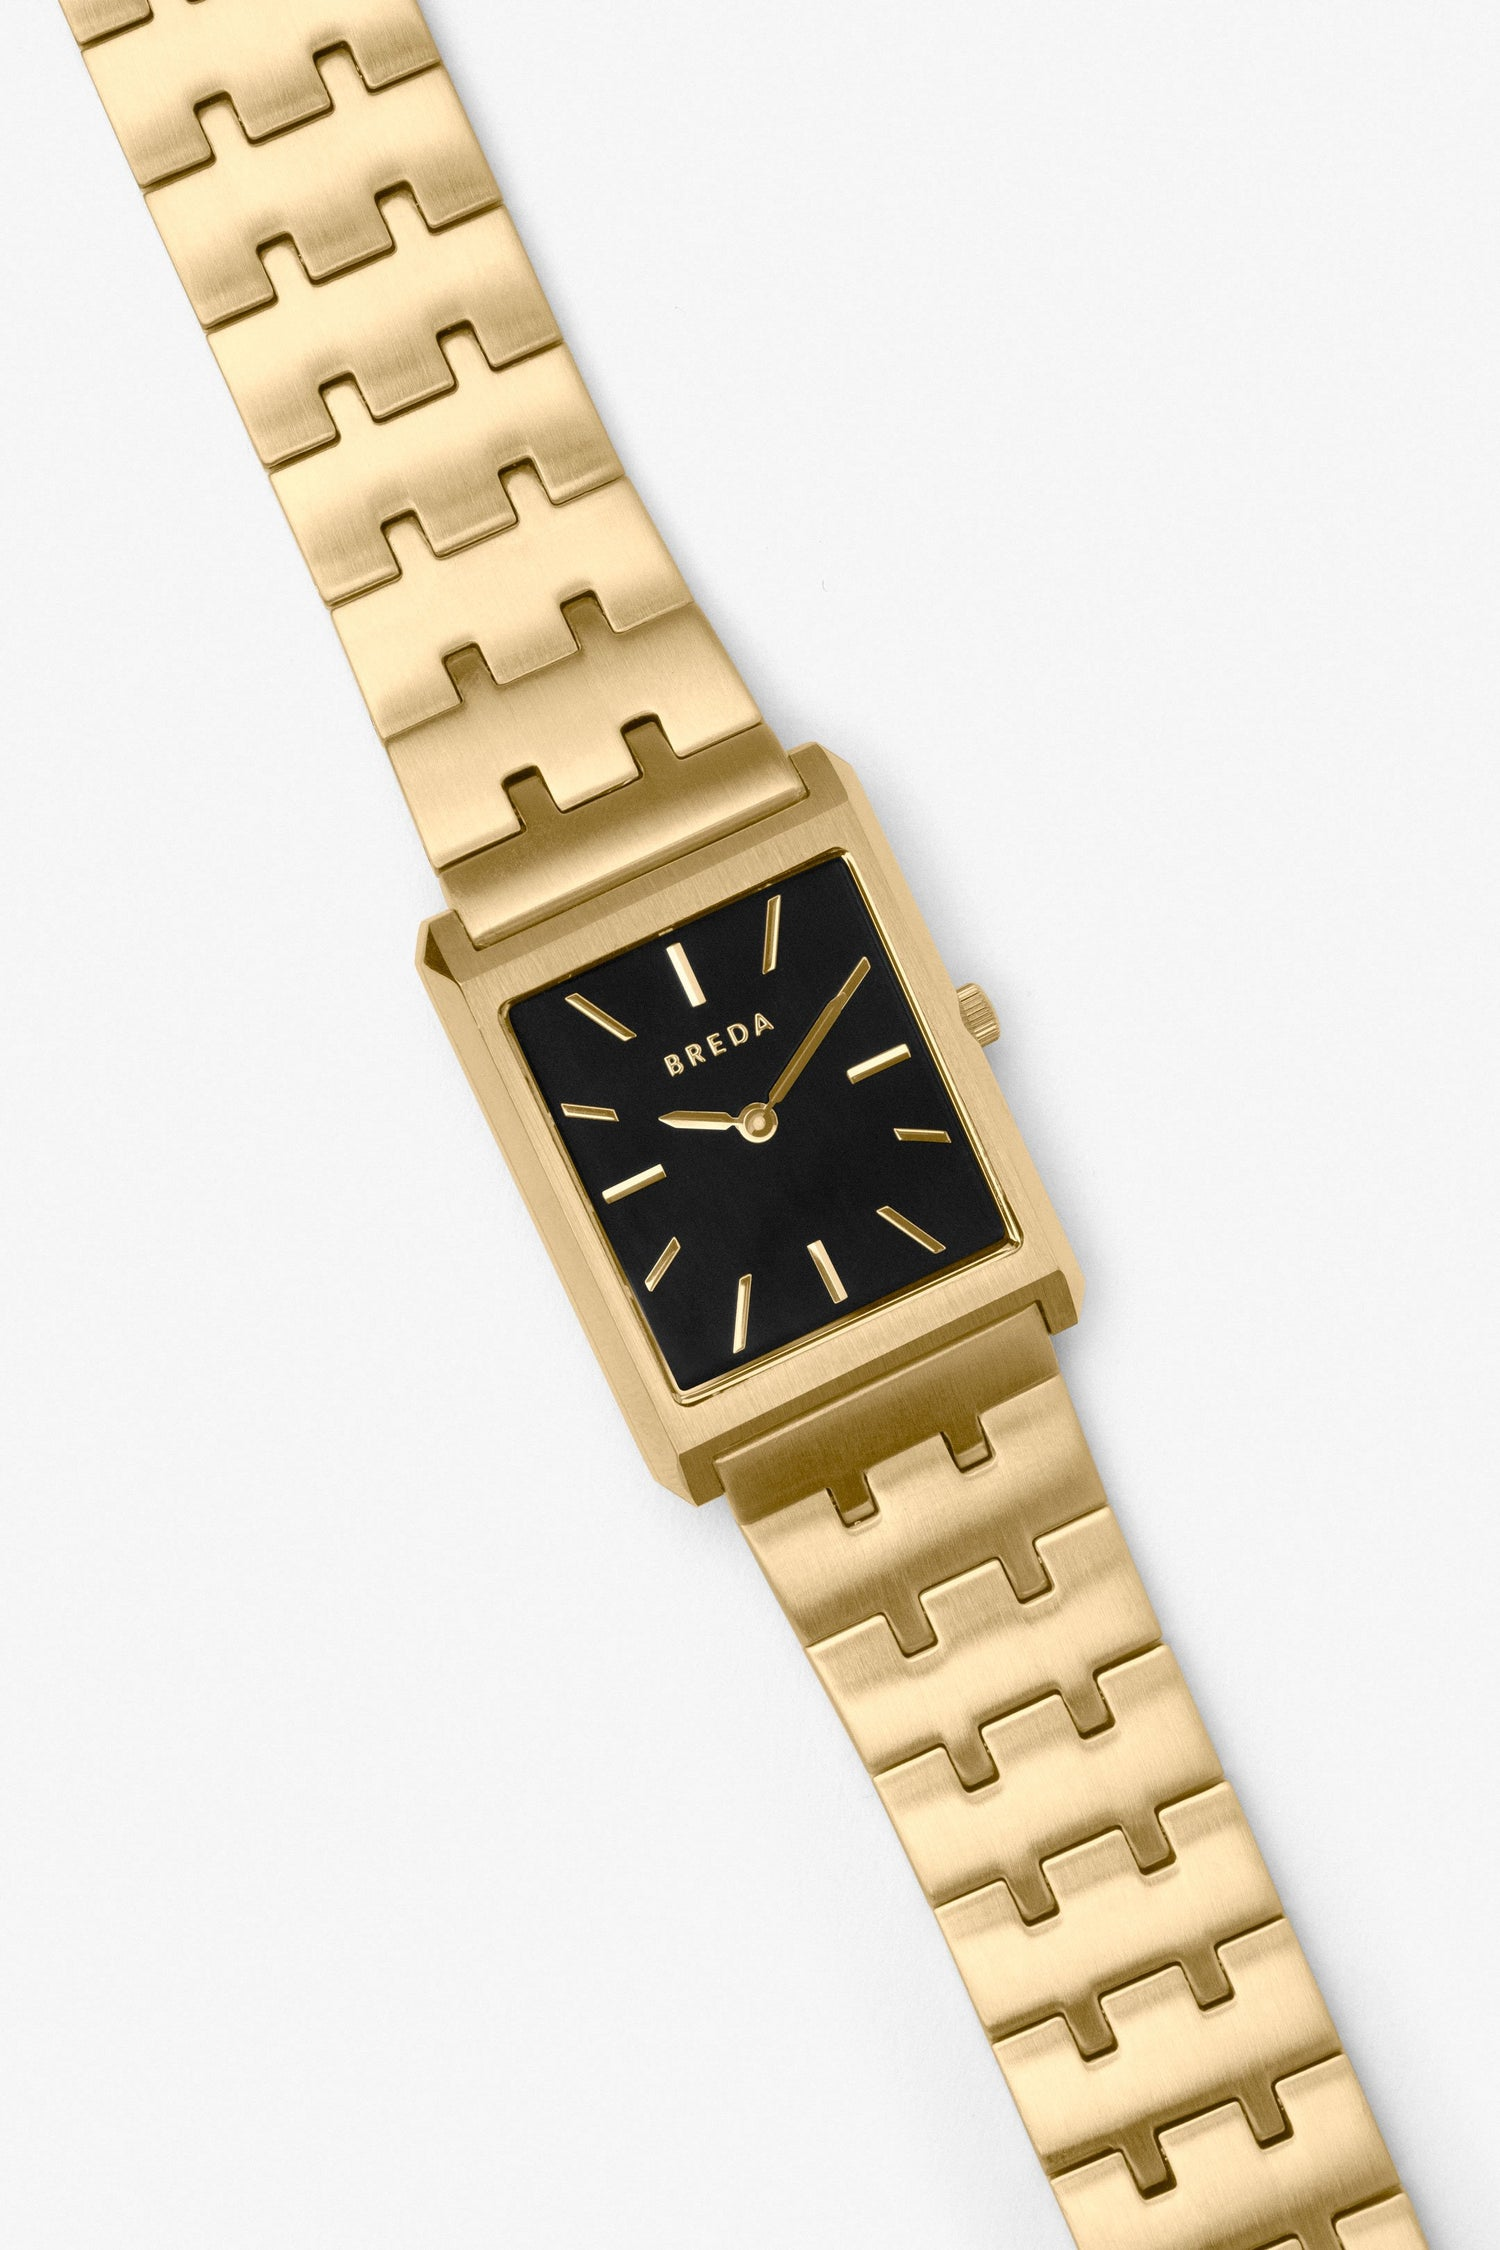 breda-virgil-1740c-gold-metal-bracelet-watch-long